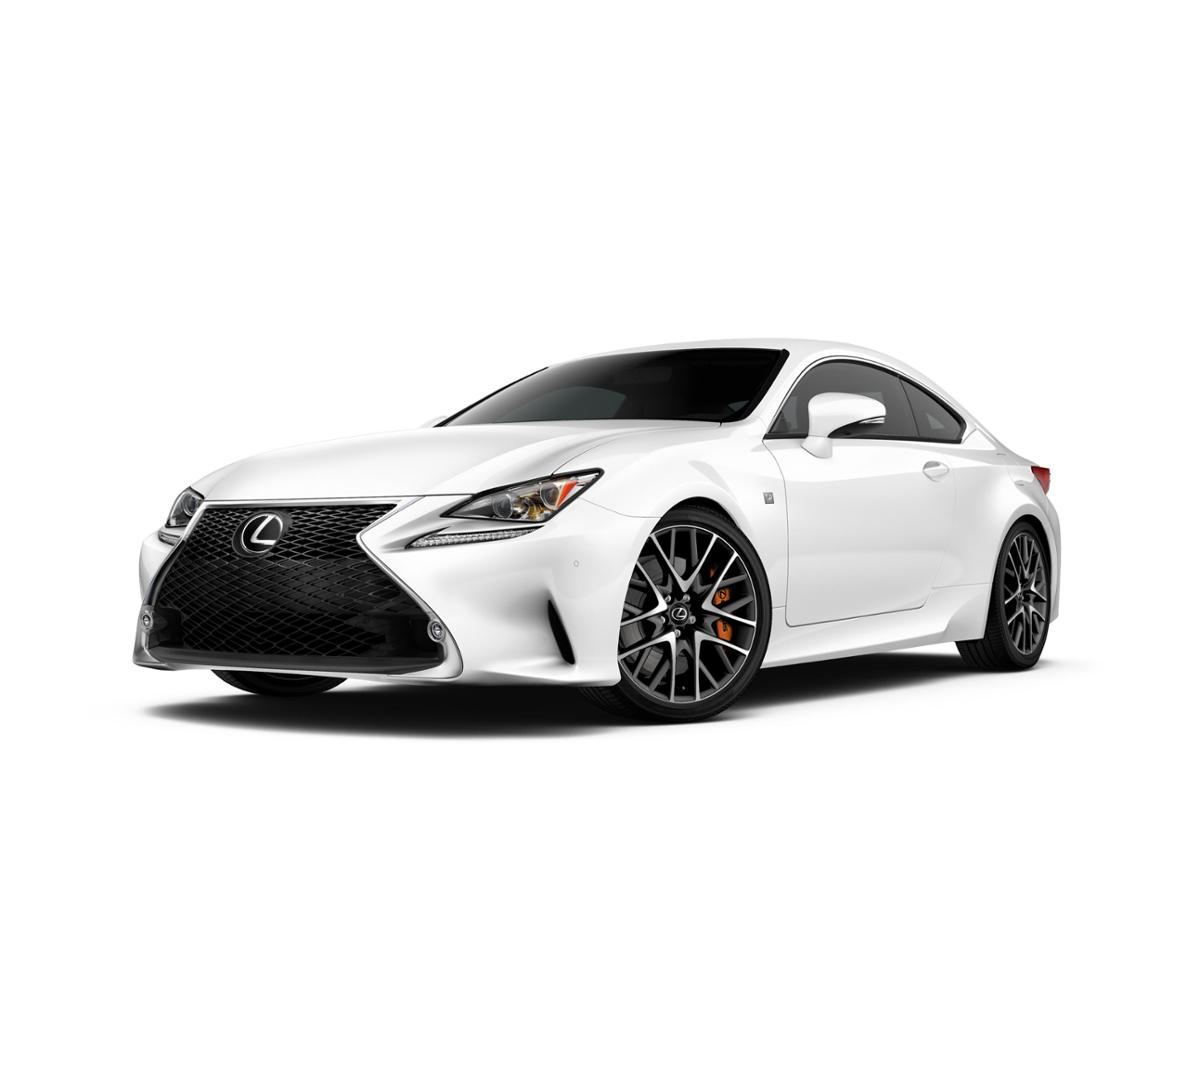 2017 Lexus RC Turbo Vehicle Photo in Santa Monica, CA 90404